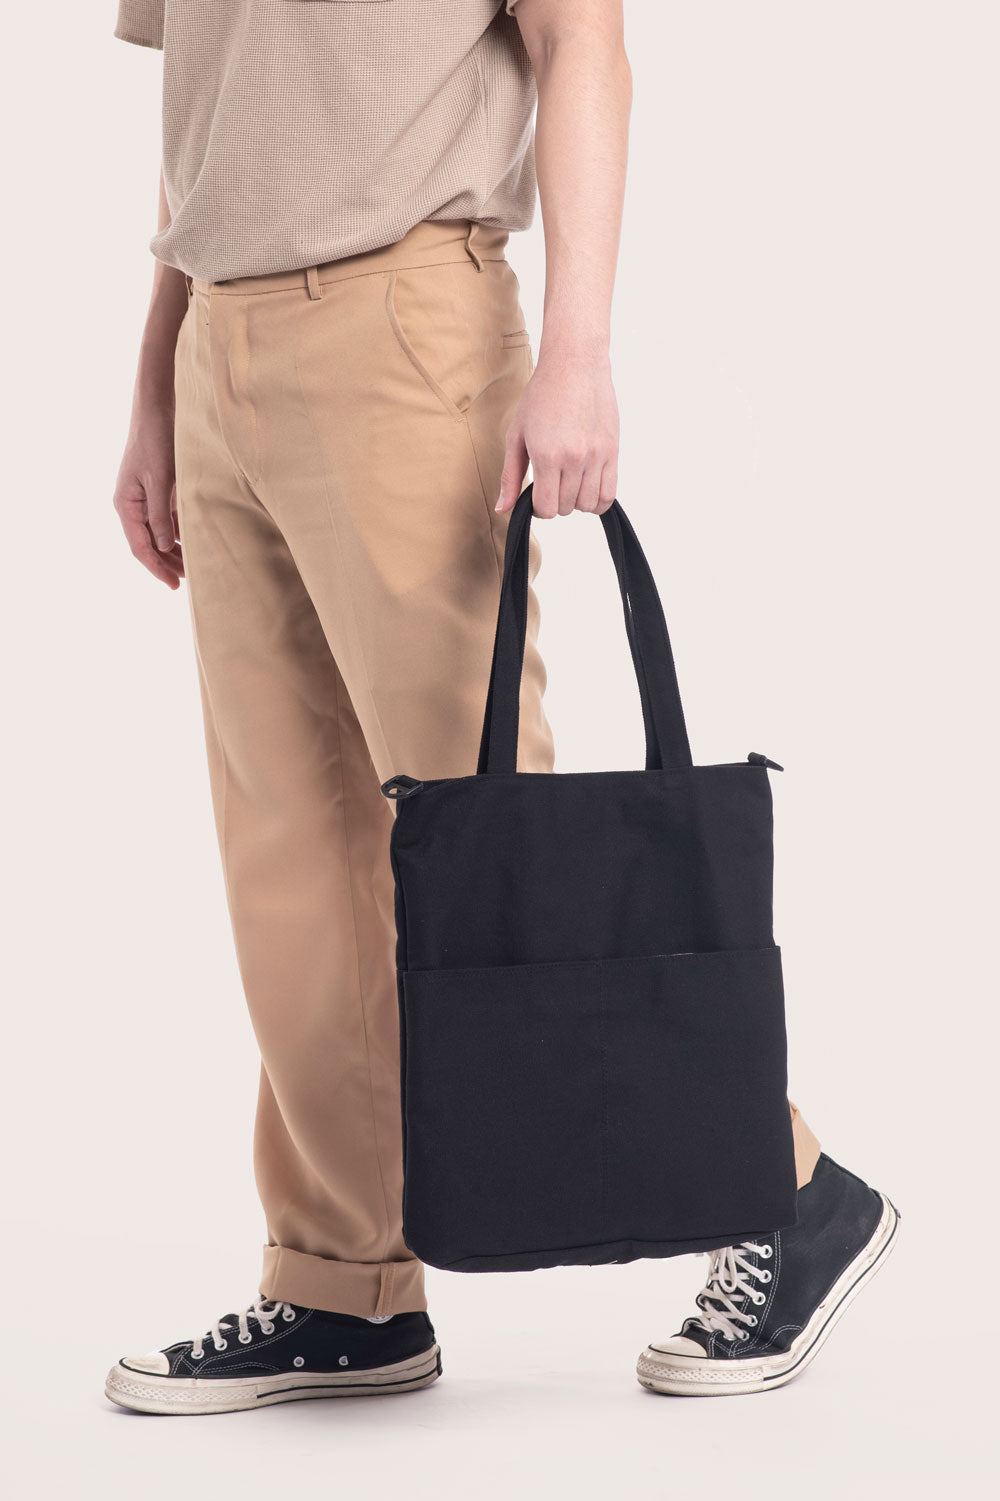 Black Daily Tote Bag